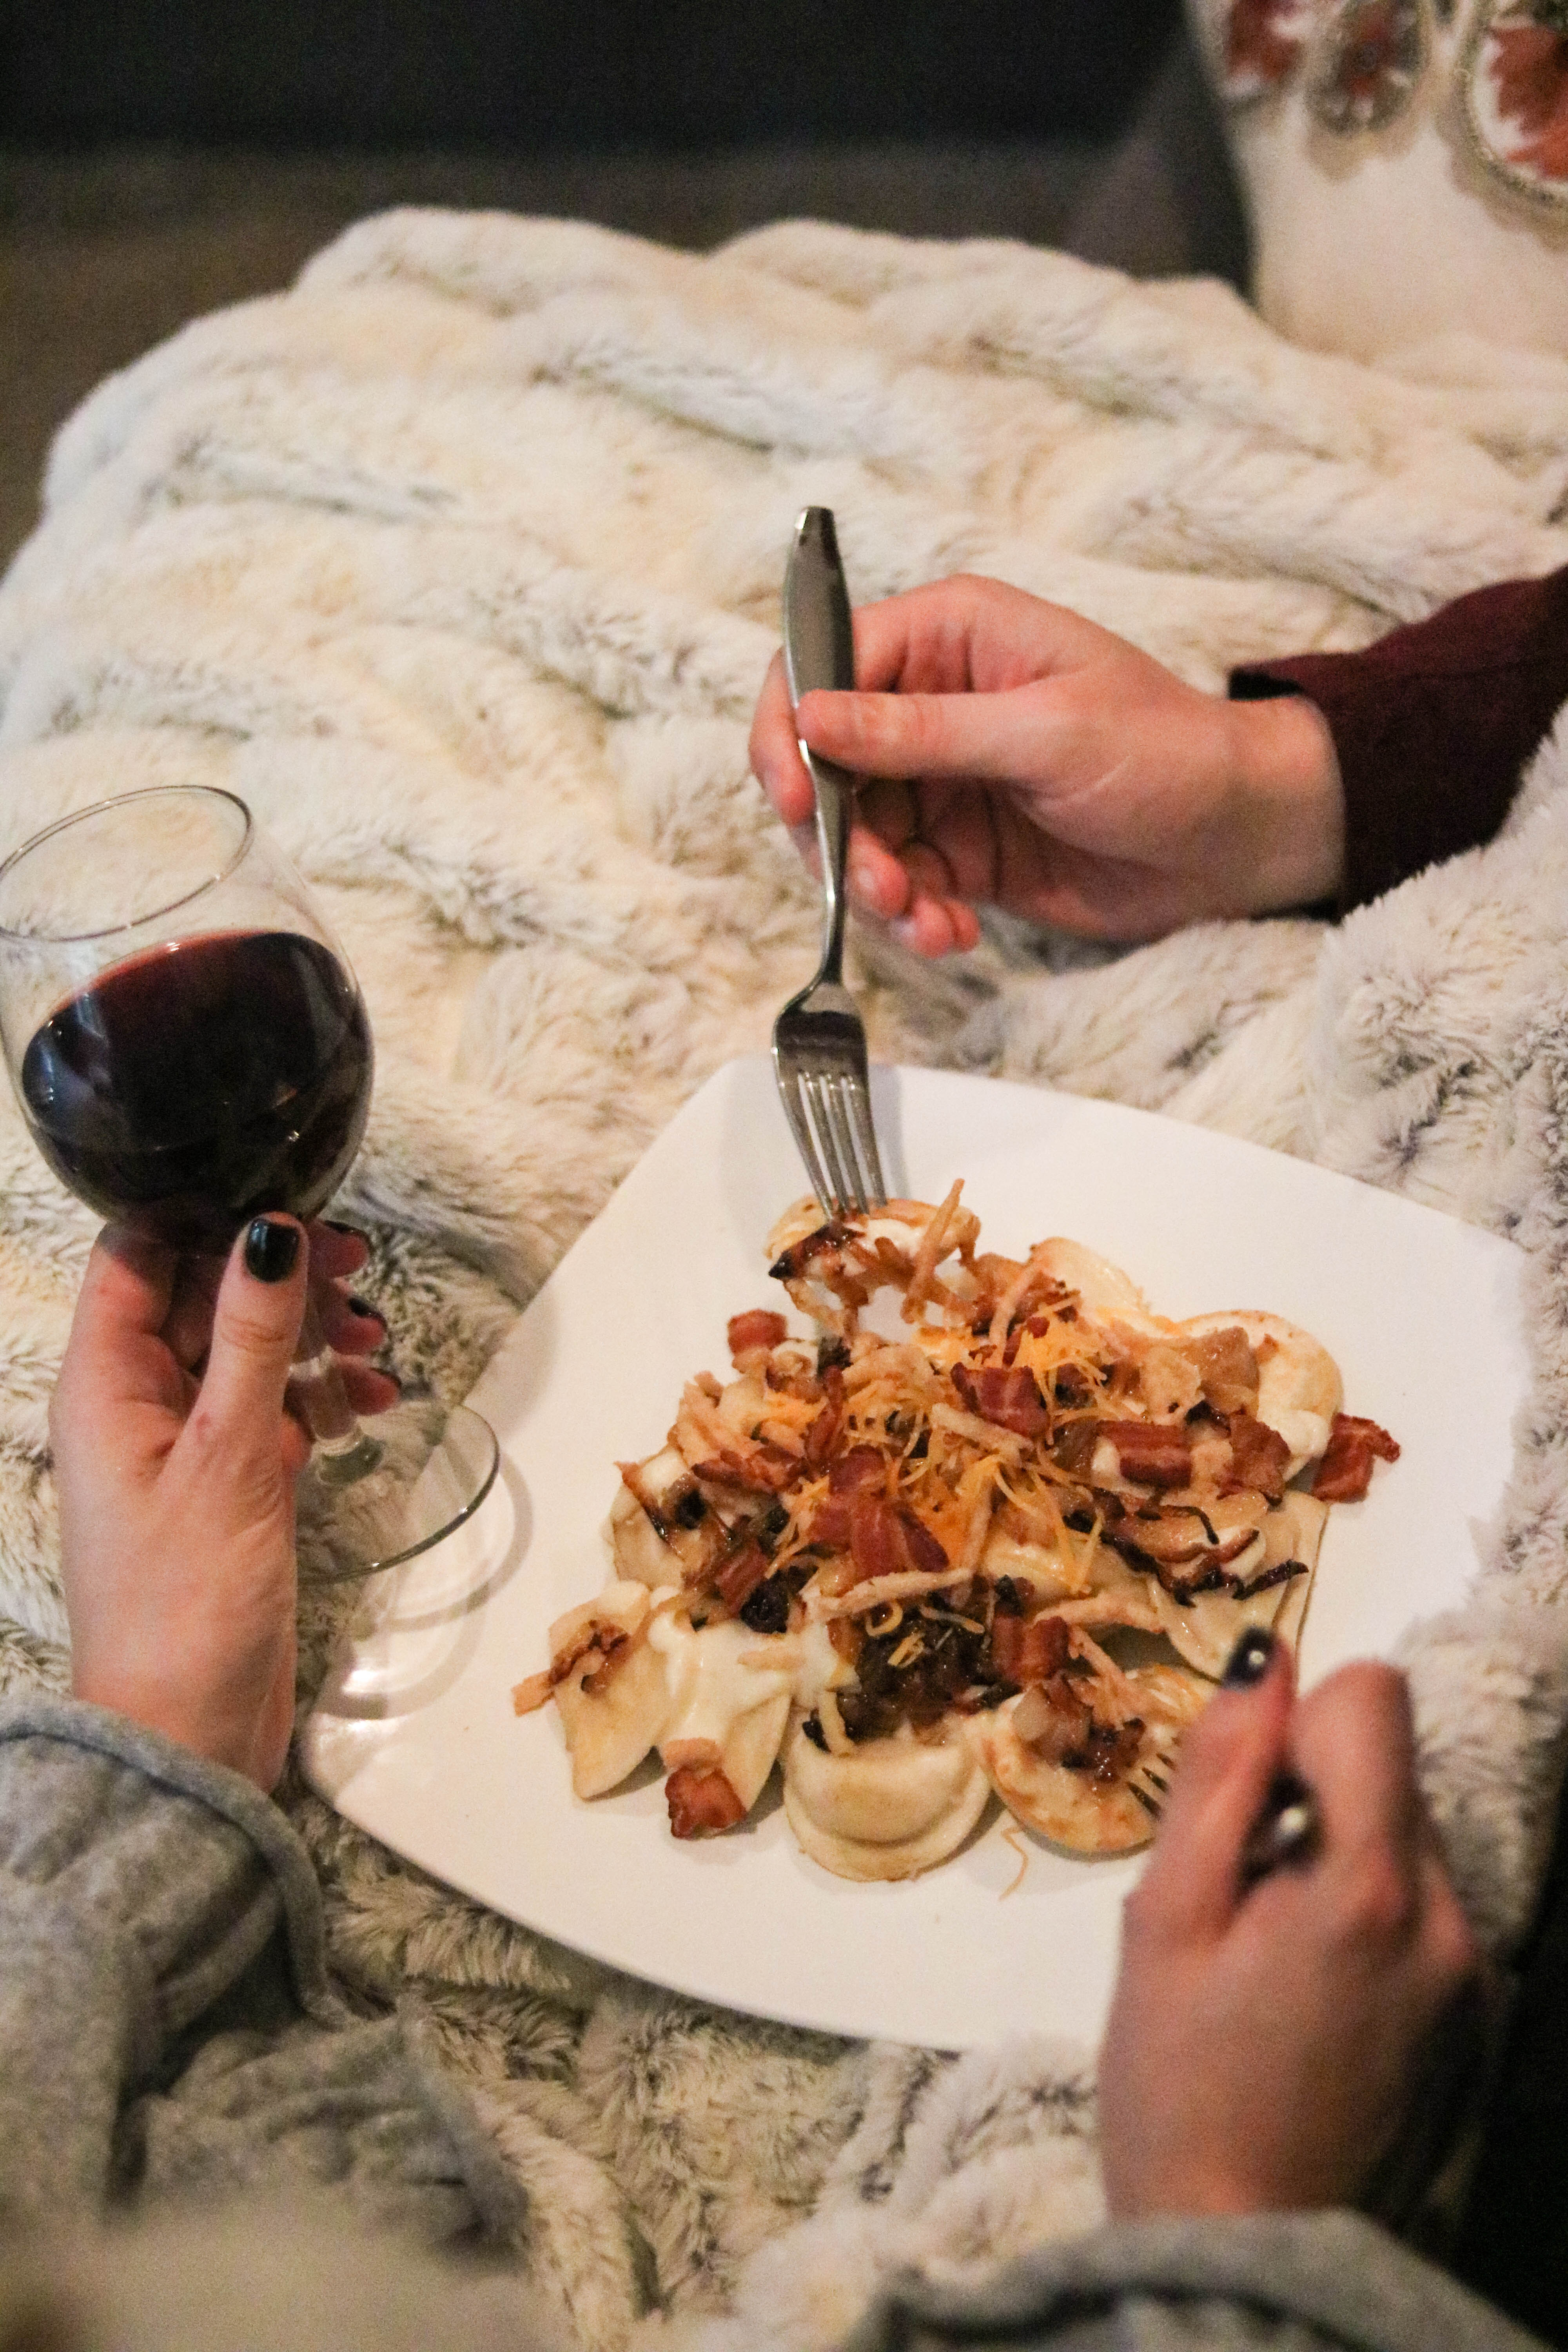 Easy Comfort Food + Playlist for a Cozy Date Night In - 15 Minute Meal with Mrs. T's Pierogies on Coming Up Roses